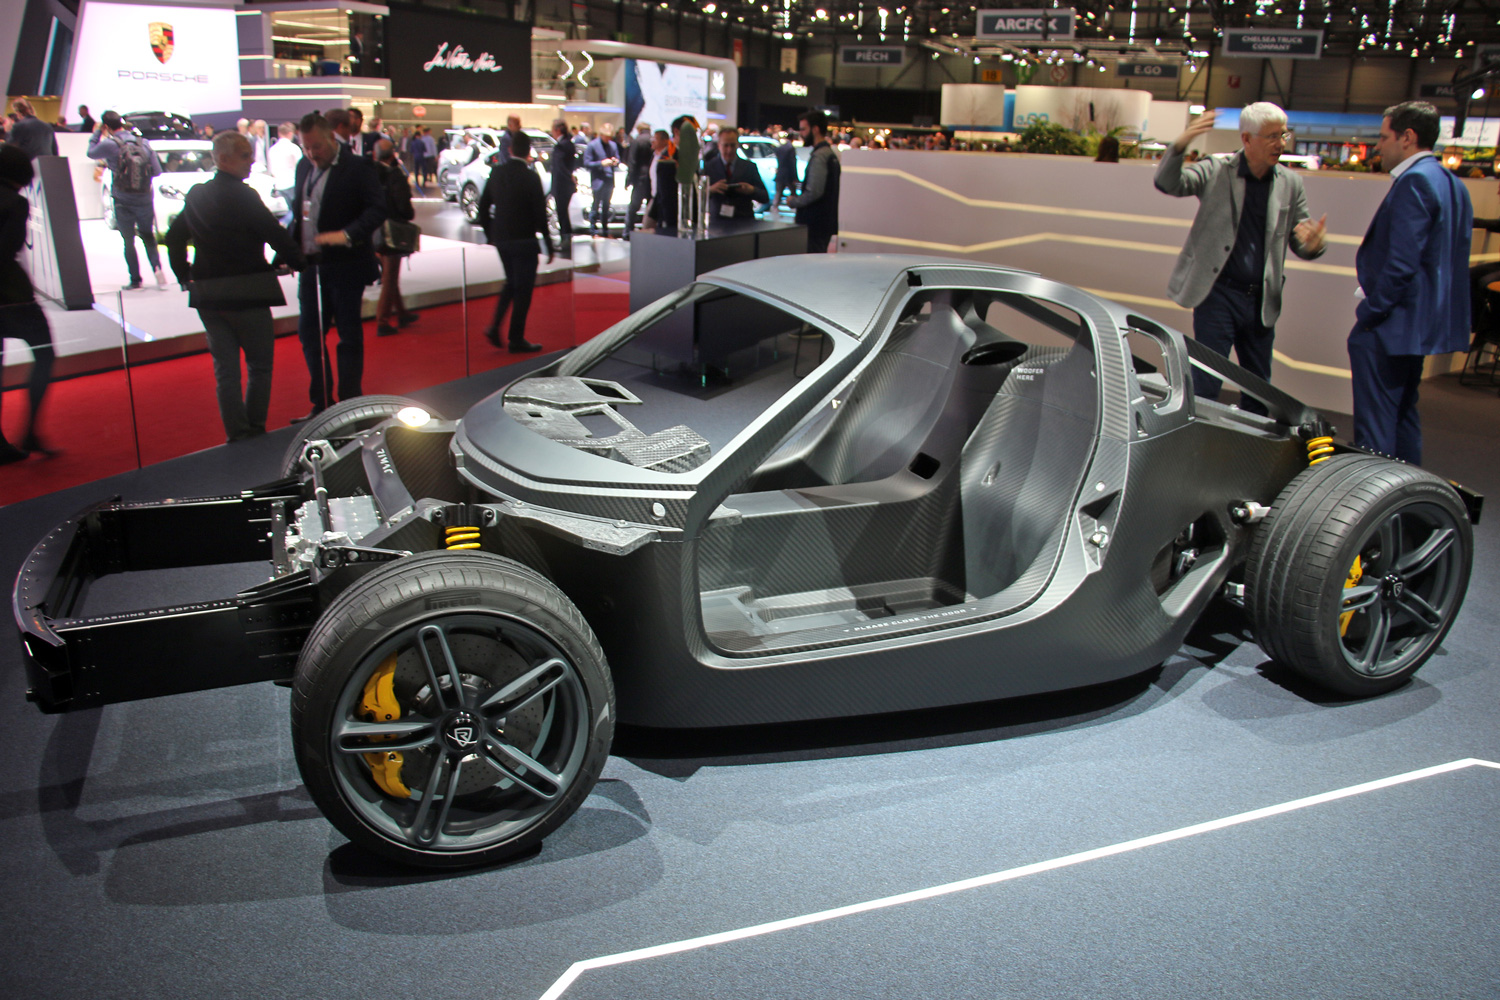 Rimac chassis